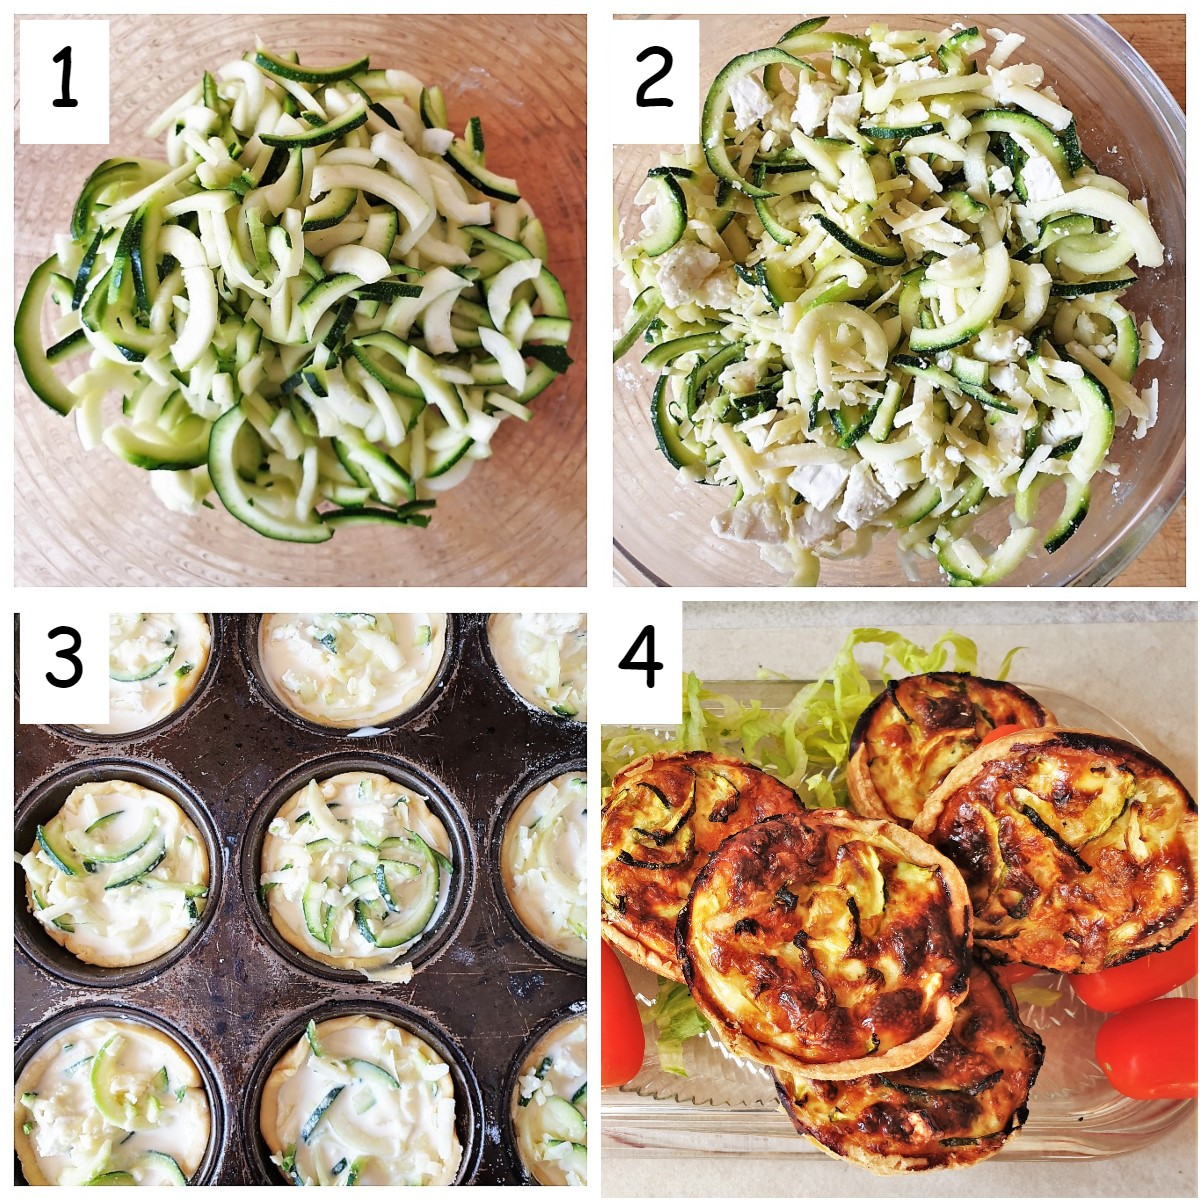 Collage of 4 images showing steps to make zucchini and goat cheese tarts.